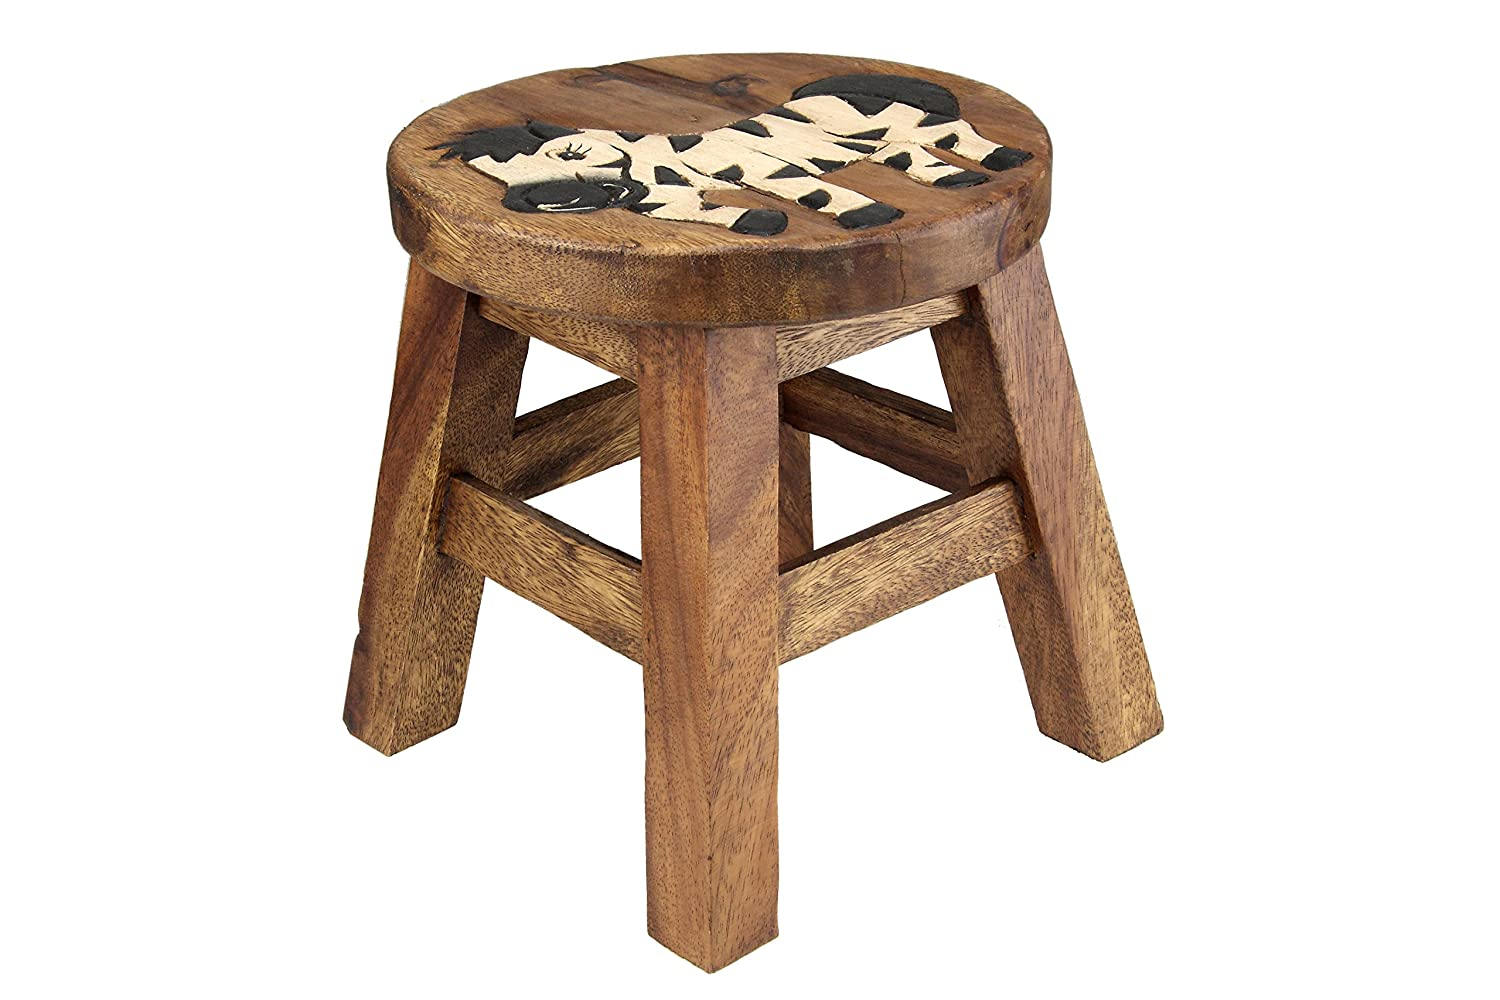 Apollo Wood Zebra Kids Stool, Brown 3112